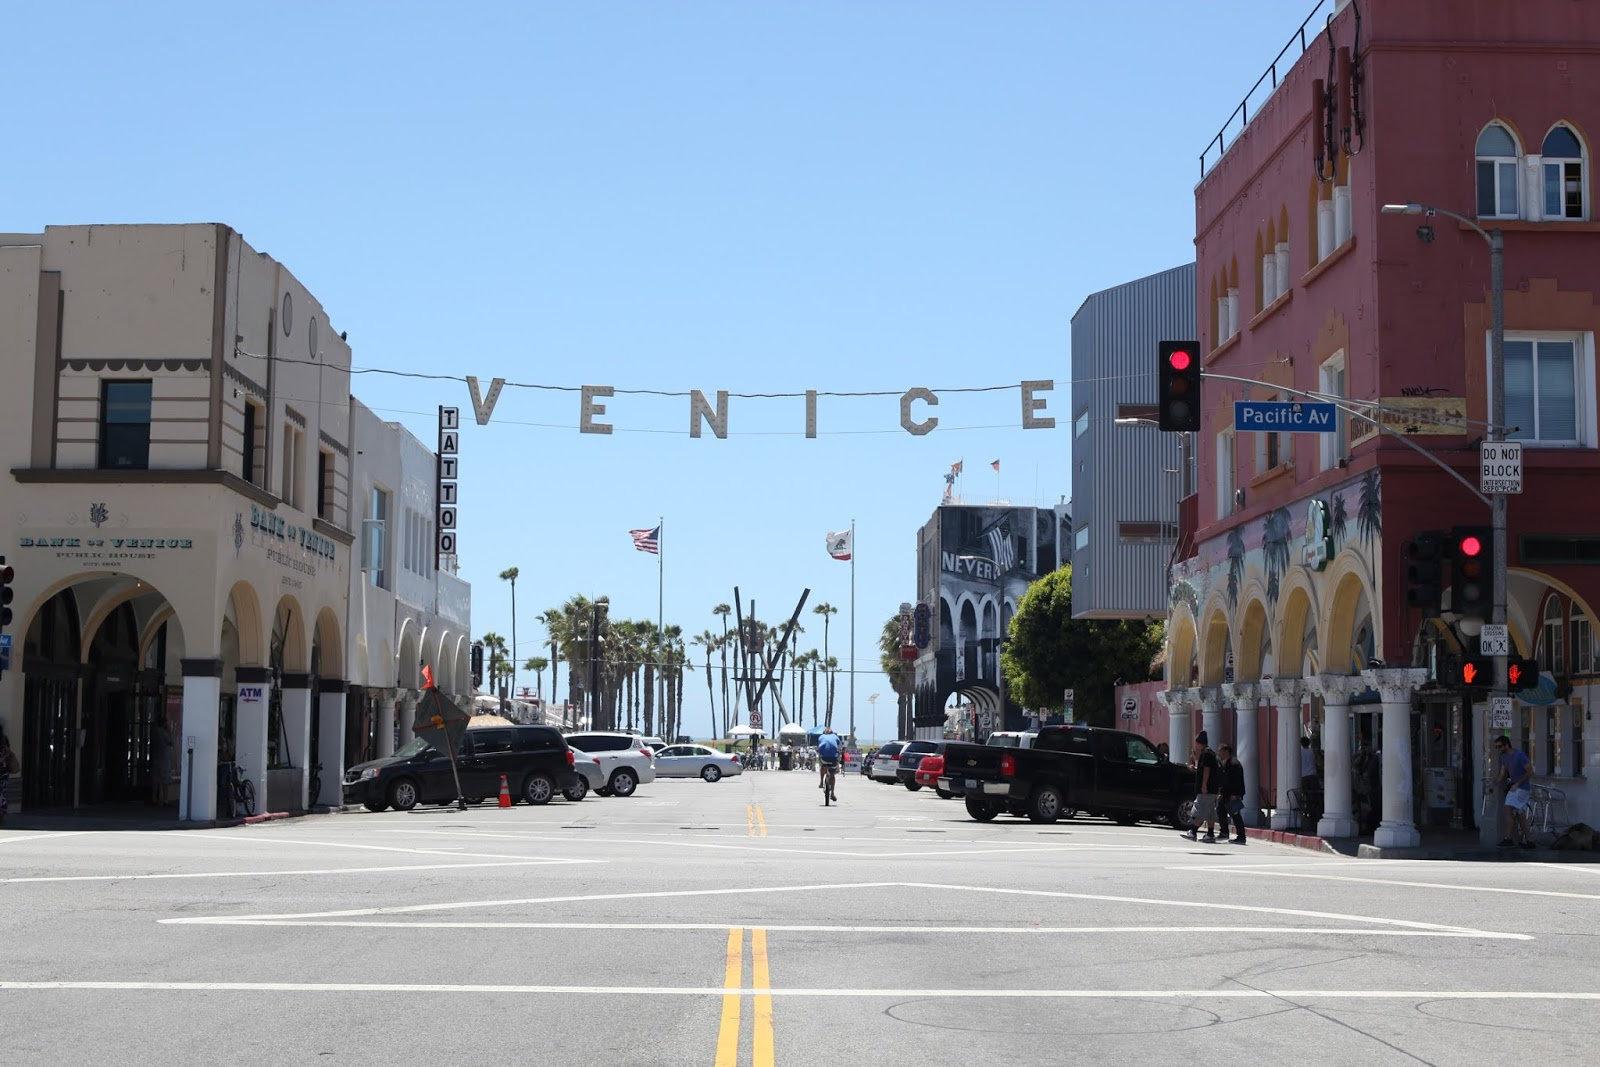 Top 10 Instagram Locations in LA